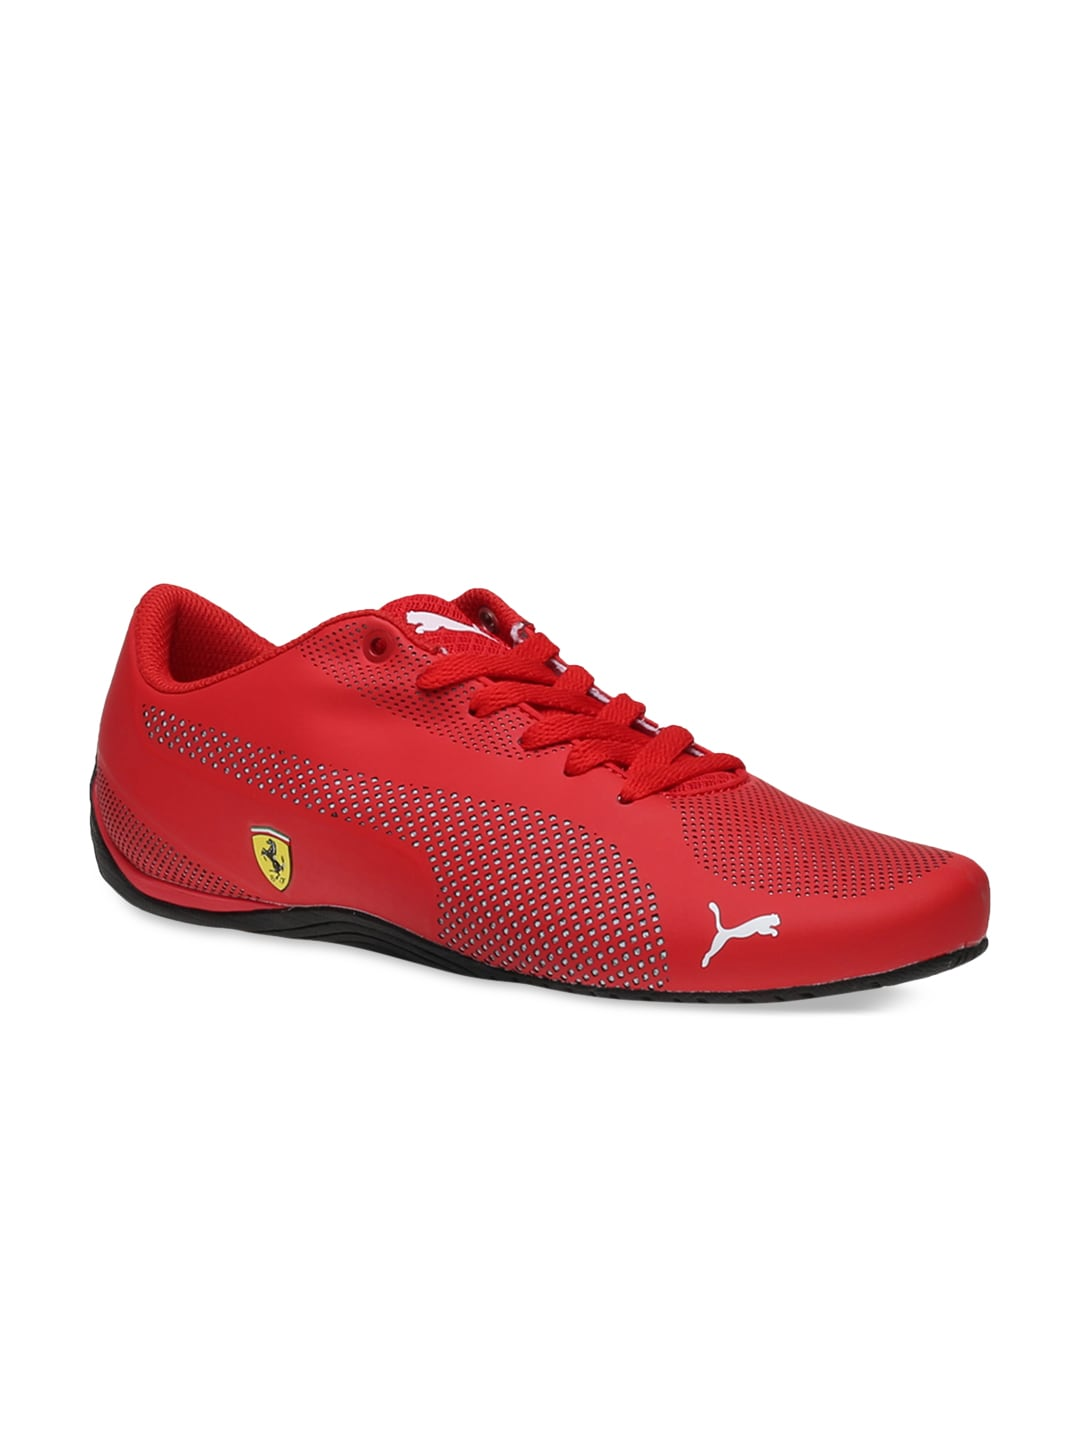 Drift Cat Puma Shoes - Buy Drift Cat Puma Shoes online in India 96521a6bab26